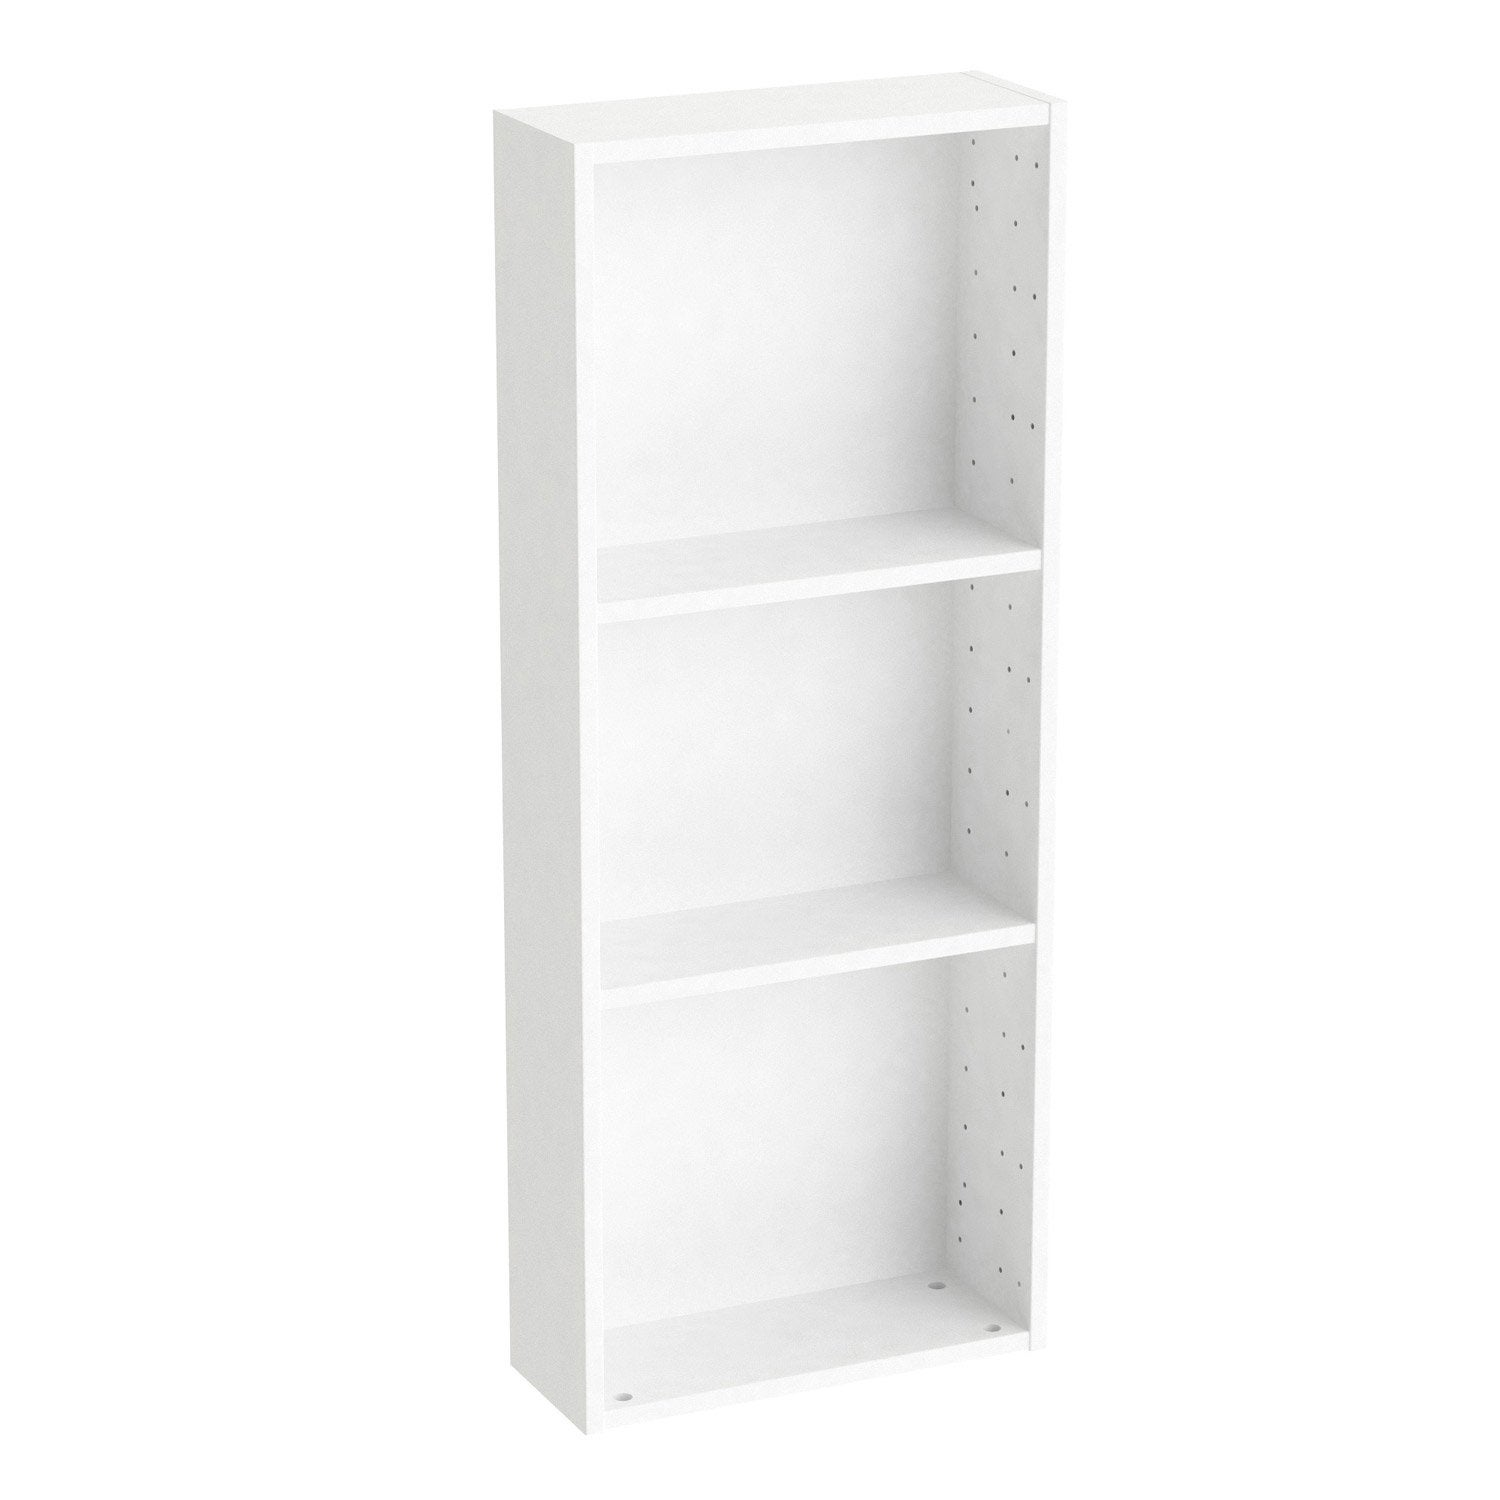 Caisson SPACEO Home 100 x 40 x 15 cm, blanc | Leroy Merlin